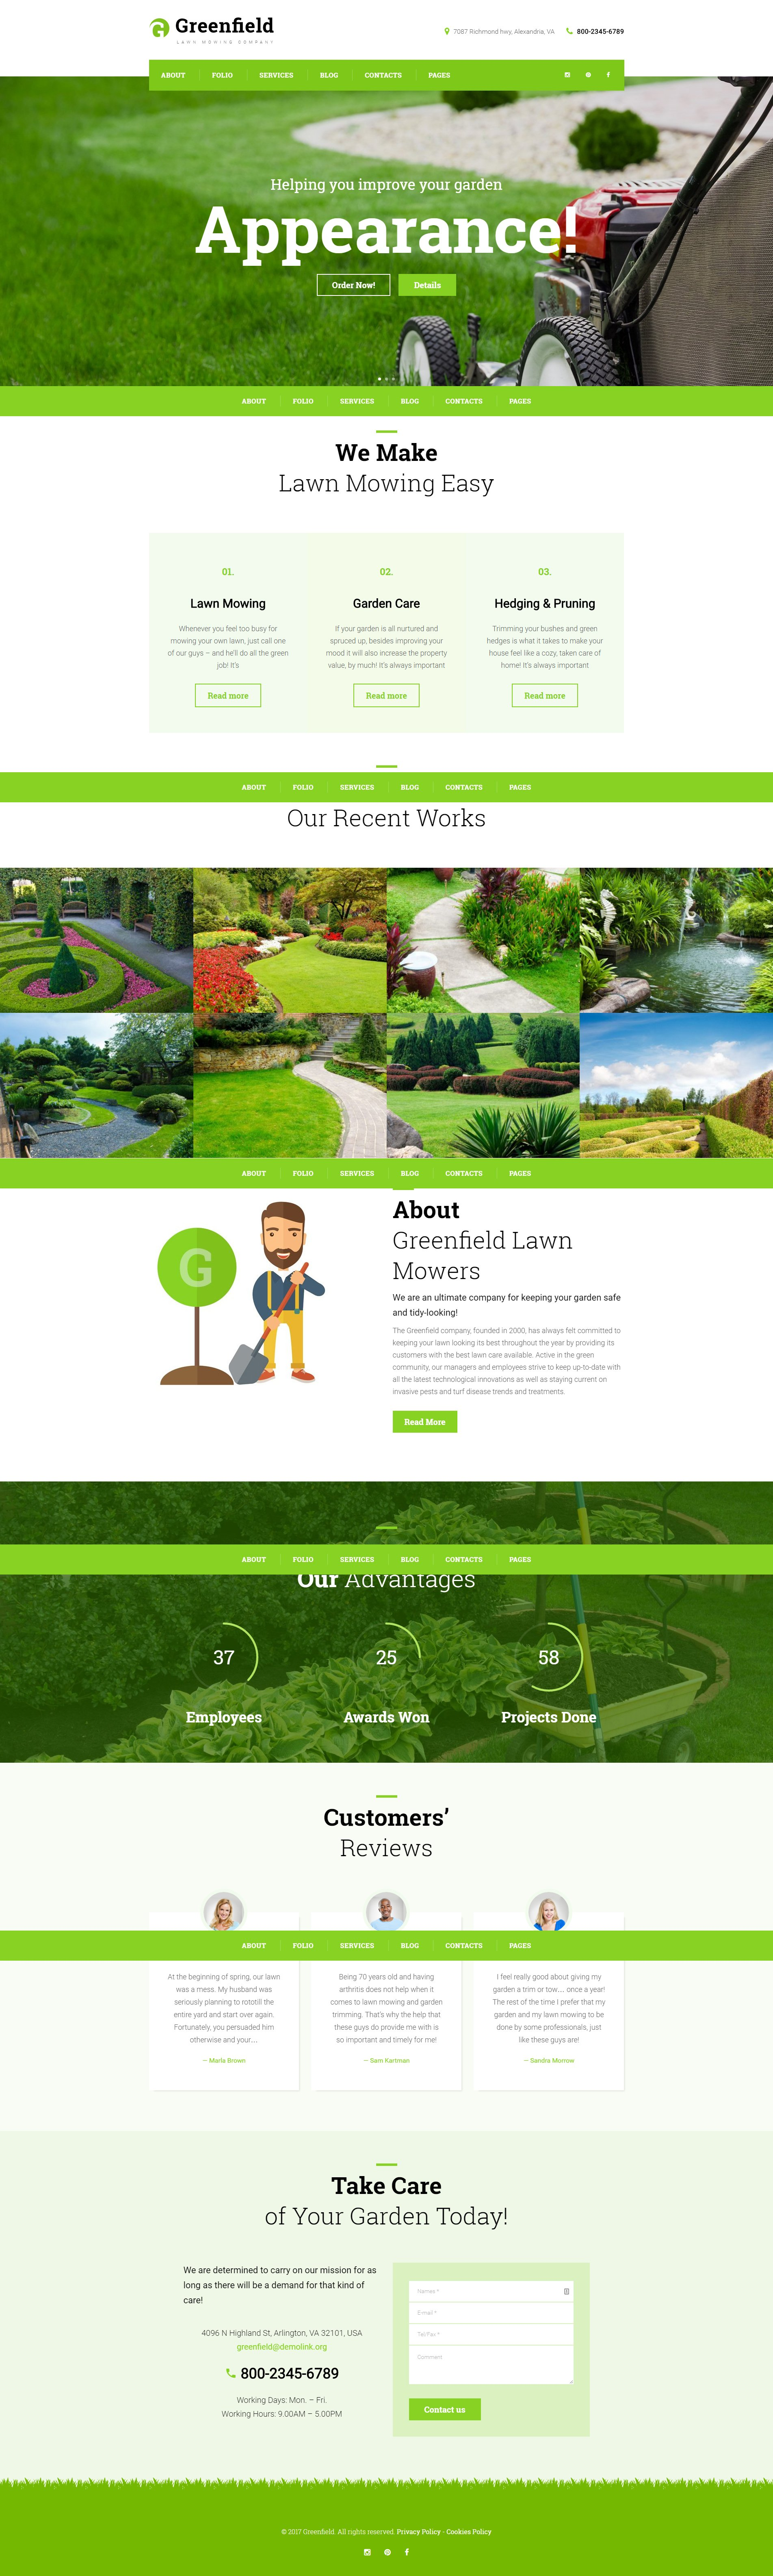 GreenField - Lawn Mowing Company Responsive Tema WordPress №61117